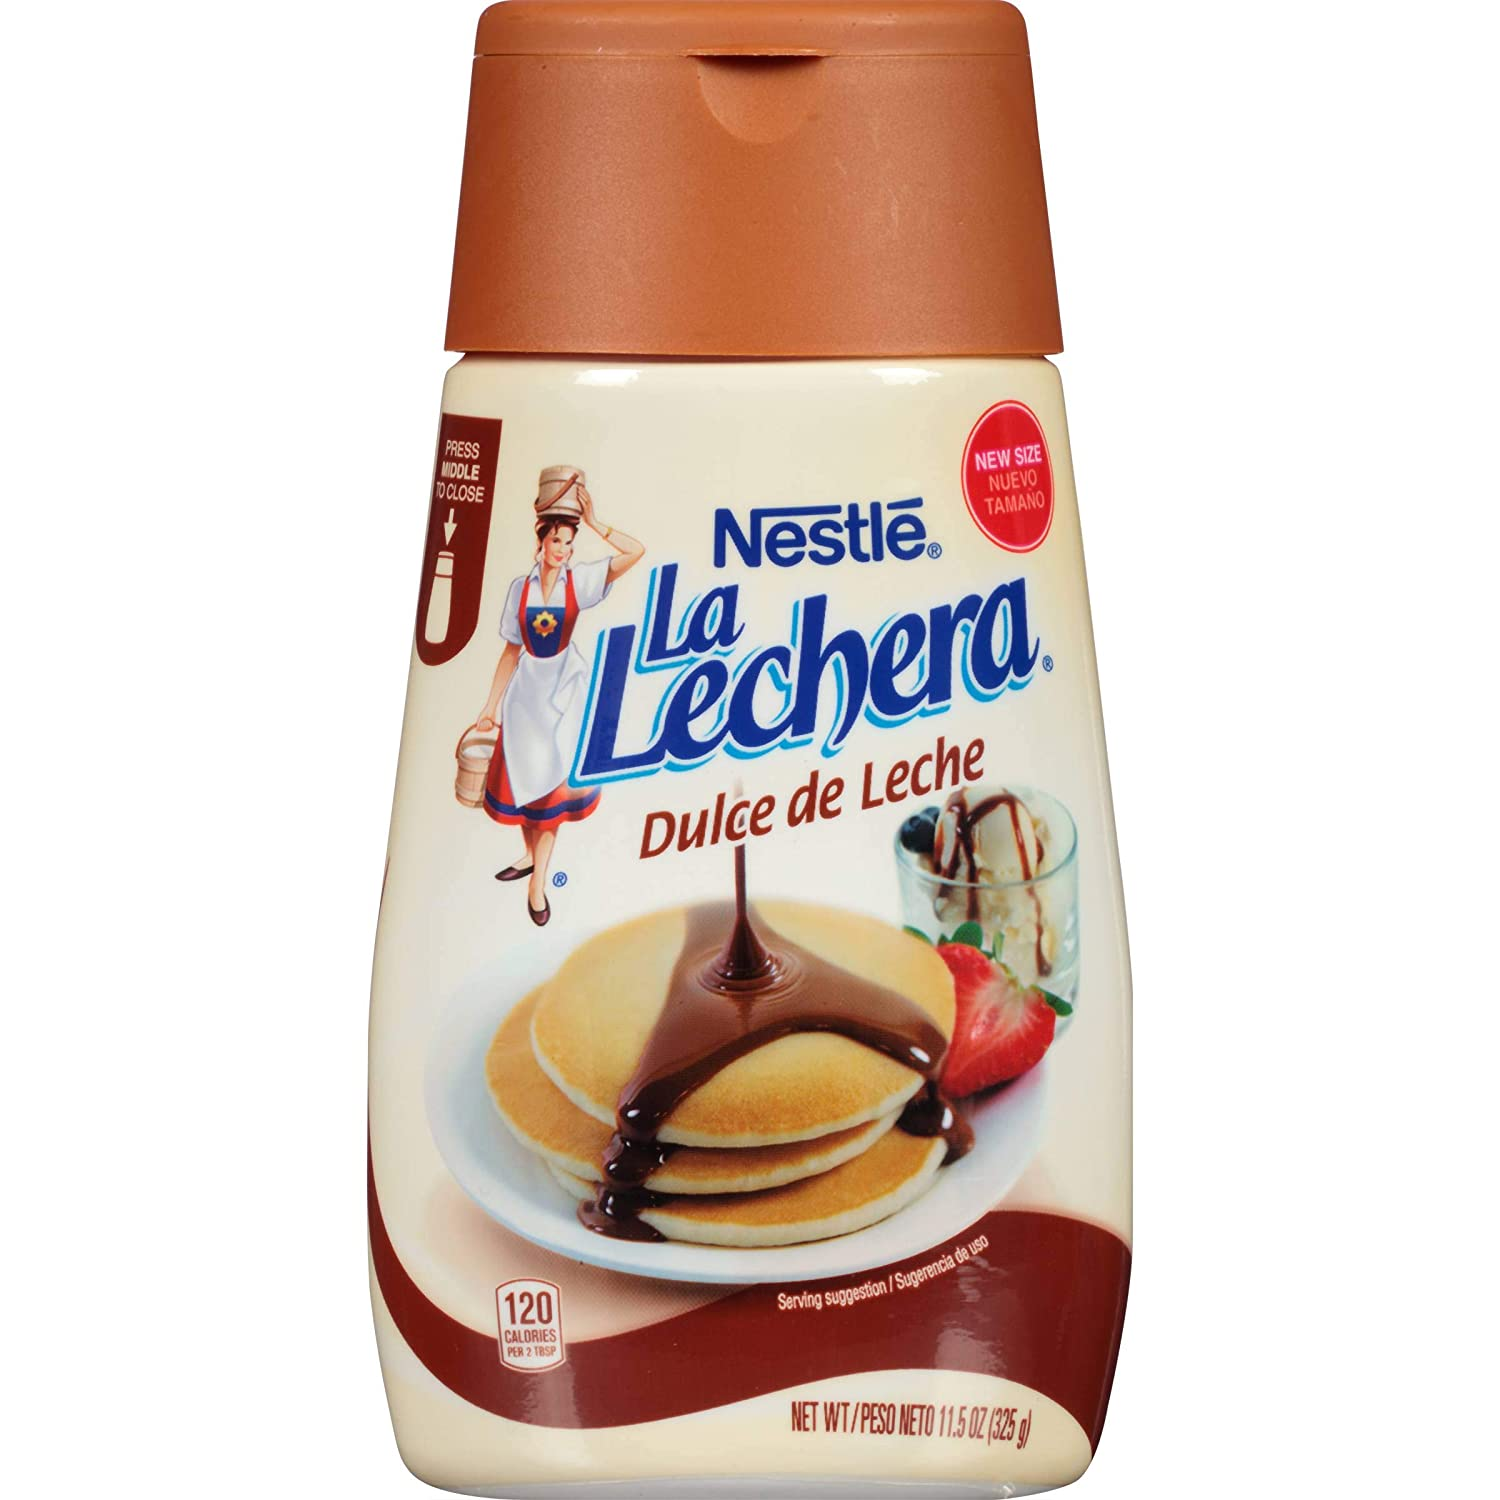 Nestle La Lechera Dulce De Leche Condensed Milk, 11.5 Ounce -- 12 per case.: Amazon.com: Grocery & Gourmet Food